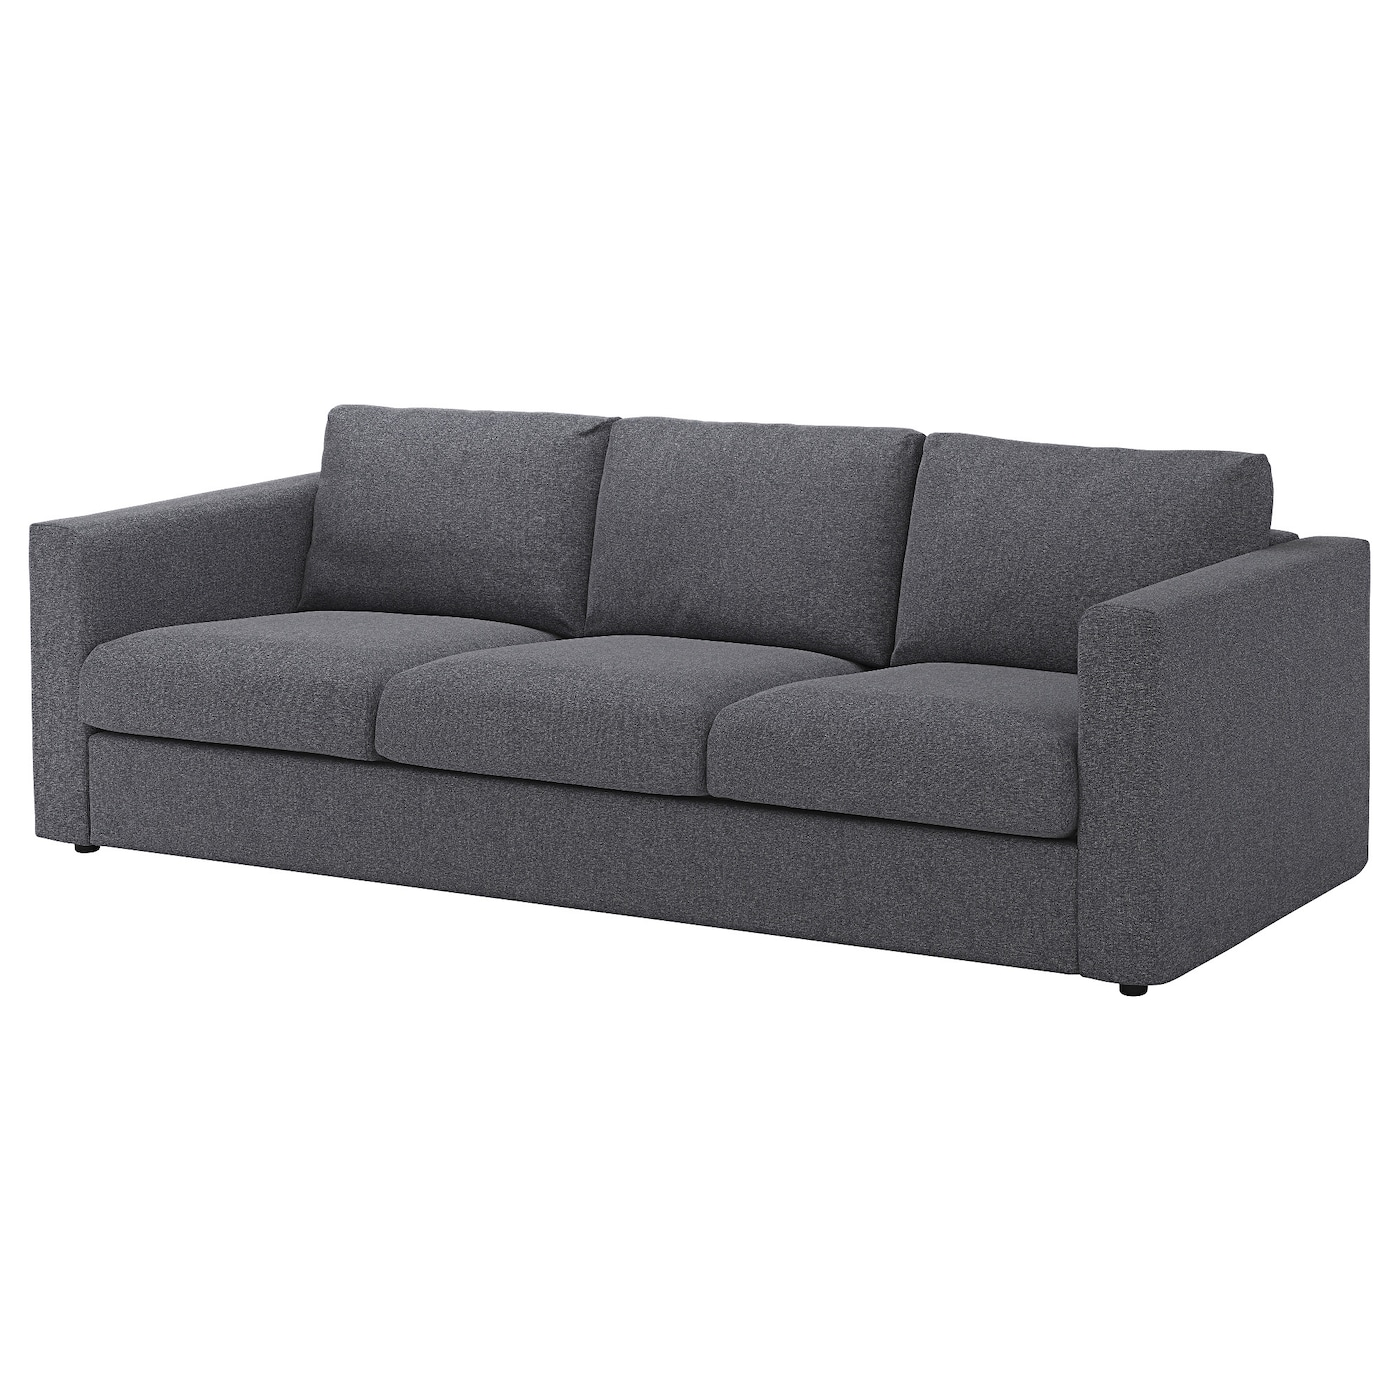 vimle 3-seat sofa gunnared medium grey